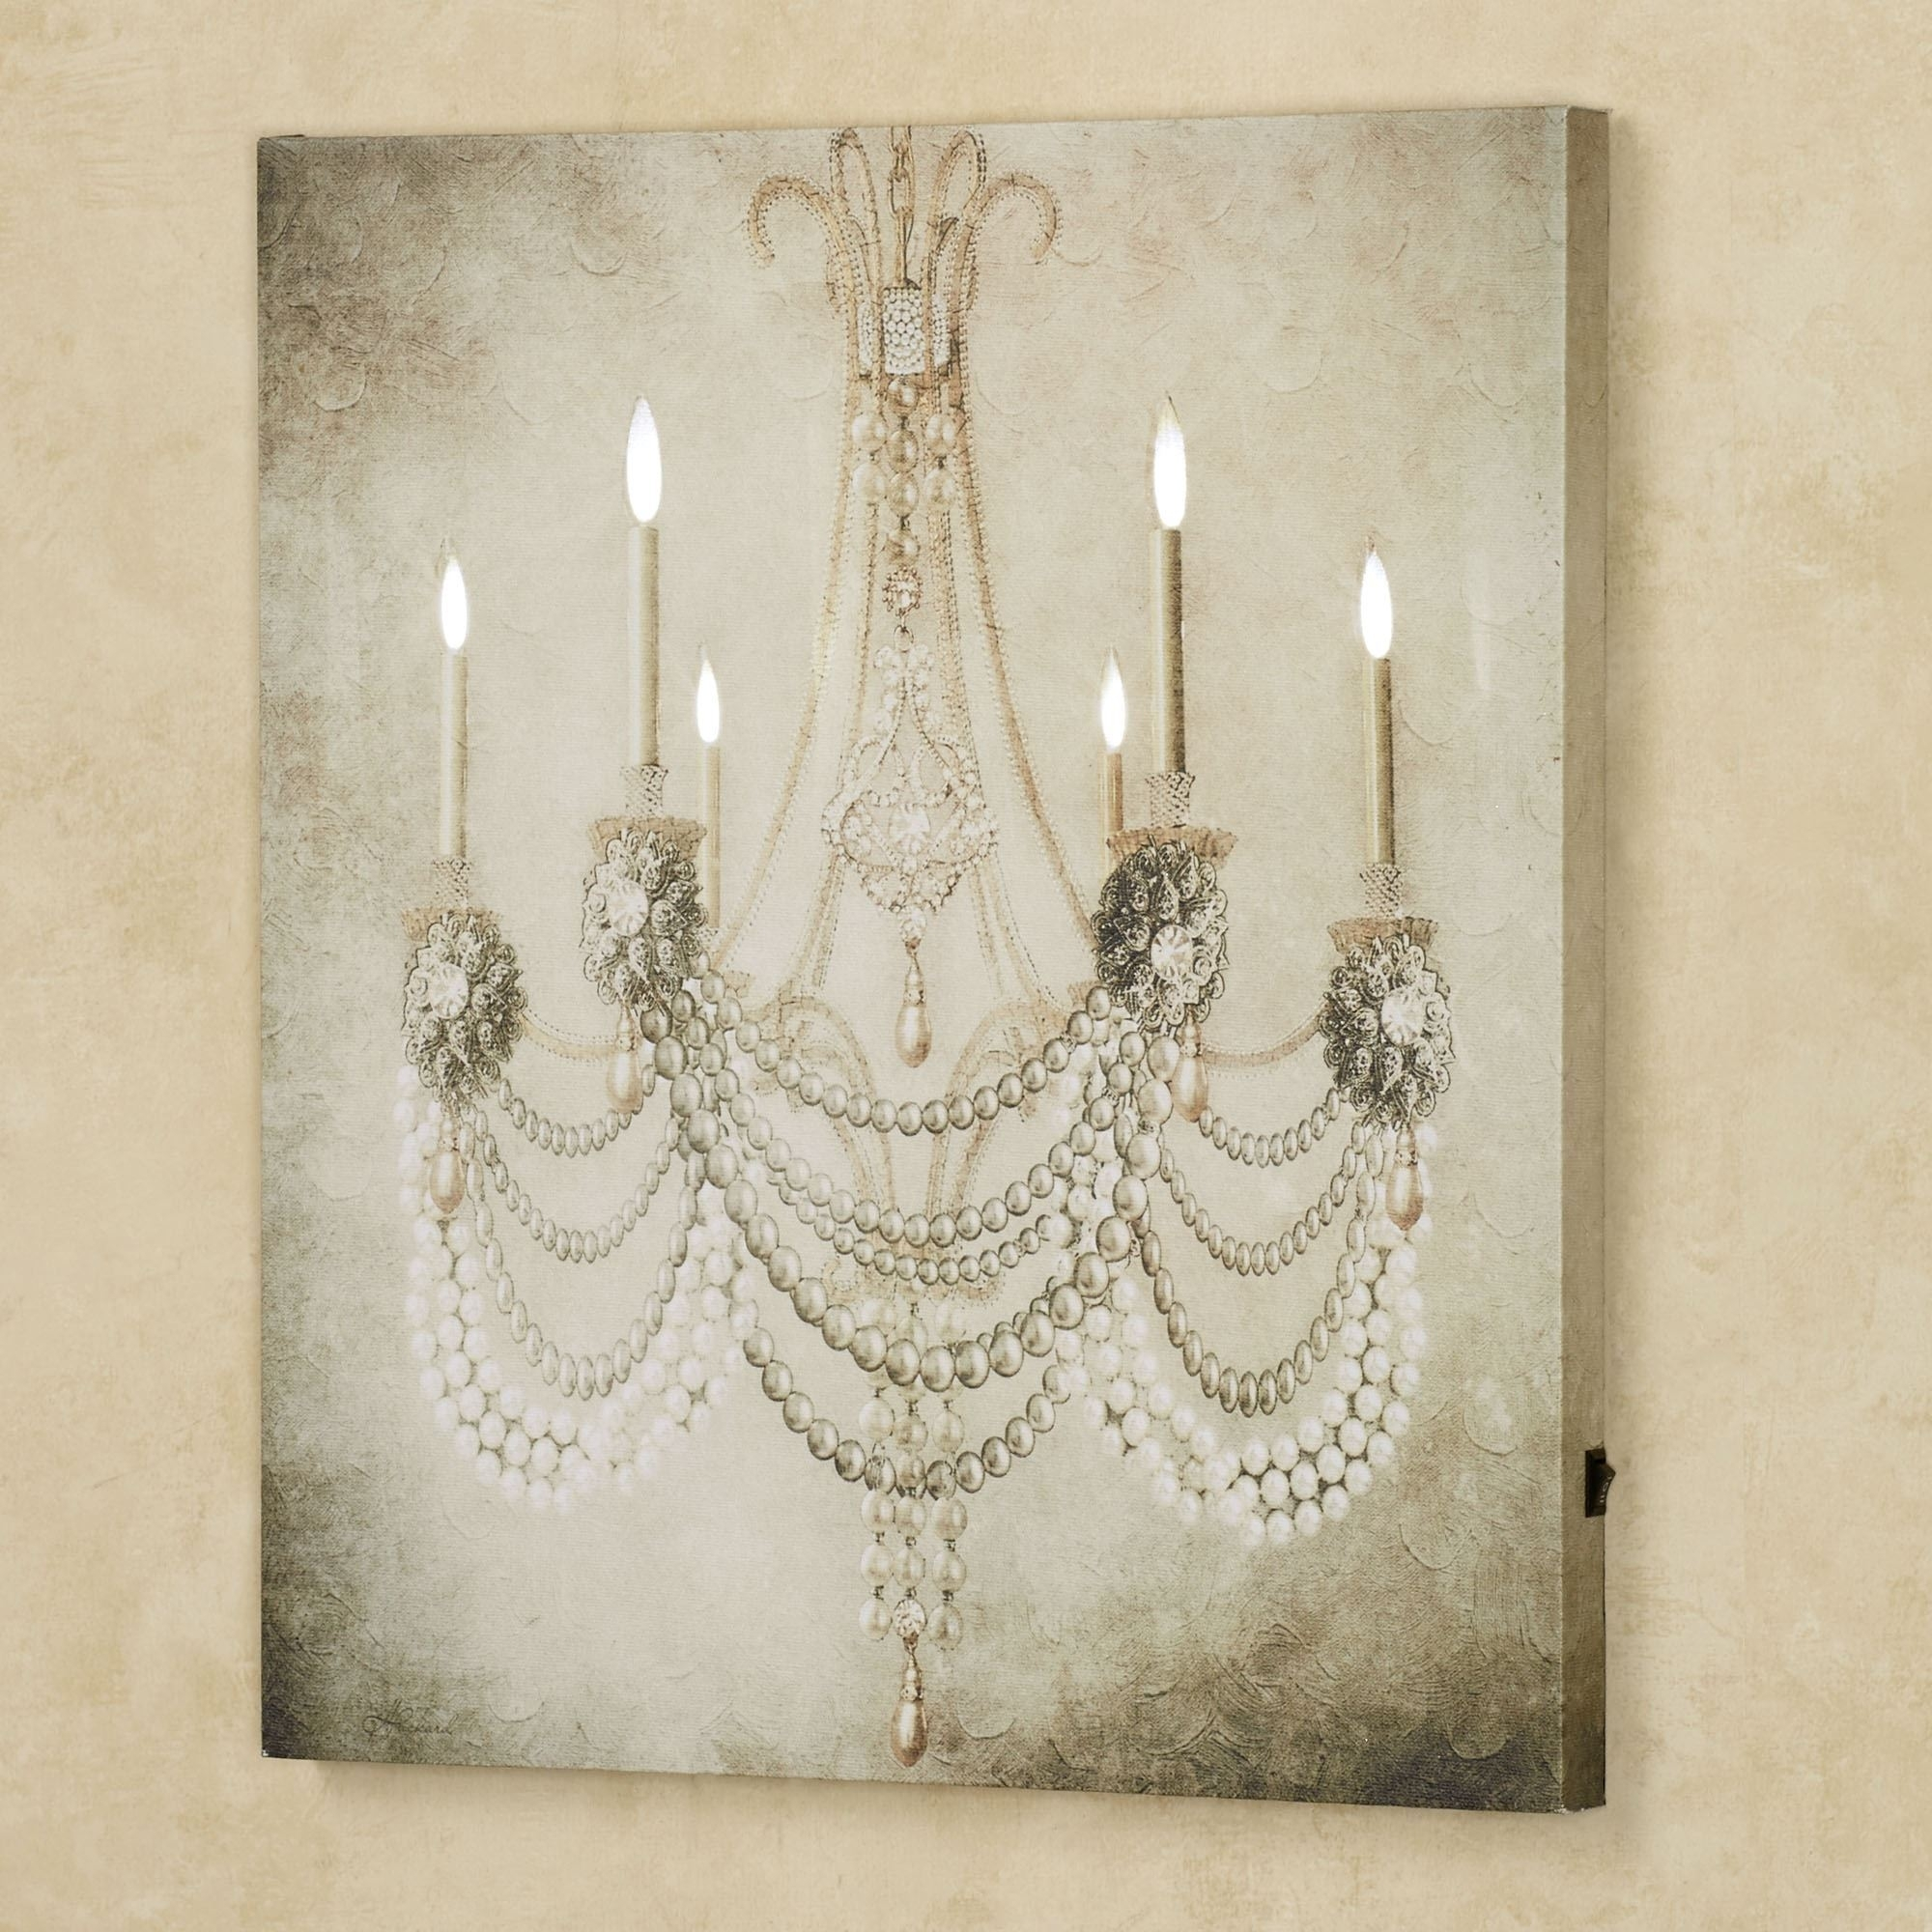 Vintage Chandelier Led Lighted Canvas Art With Regard To Recent Lighted Wall Art (View 19 of 20)